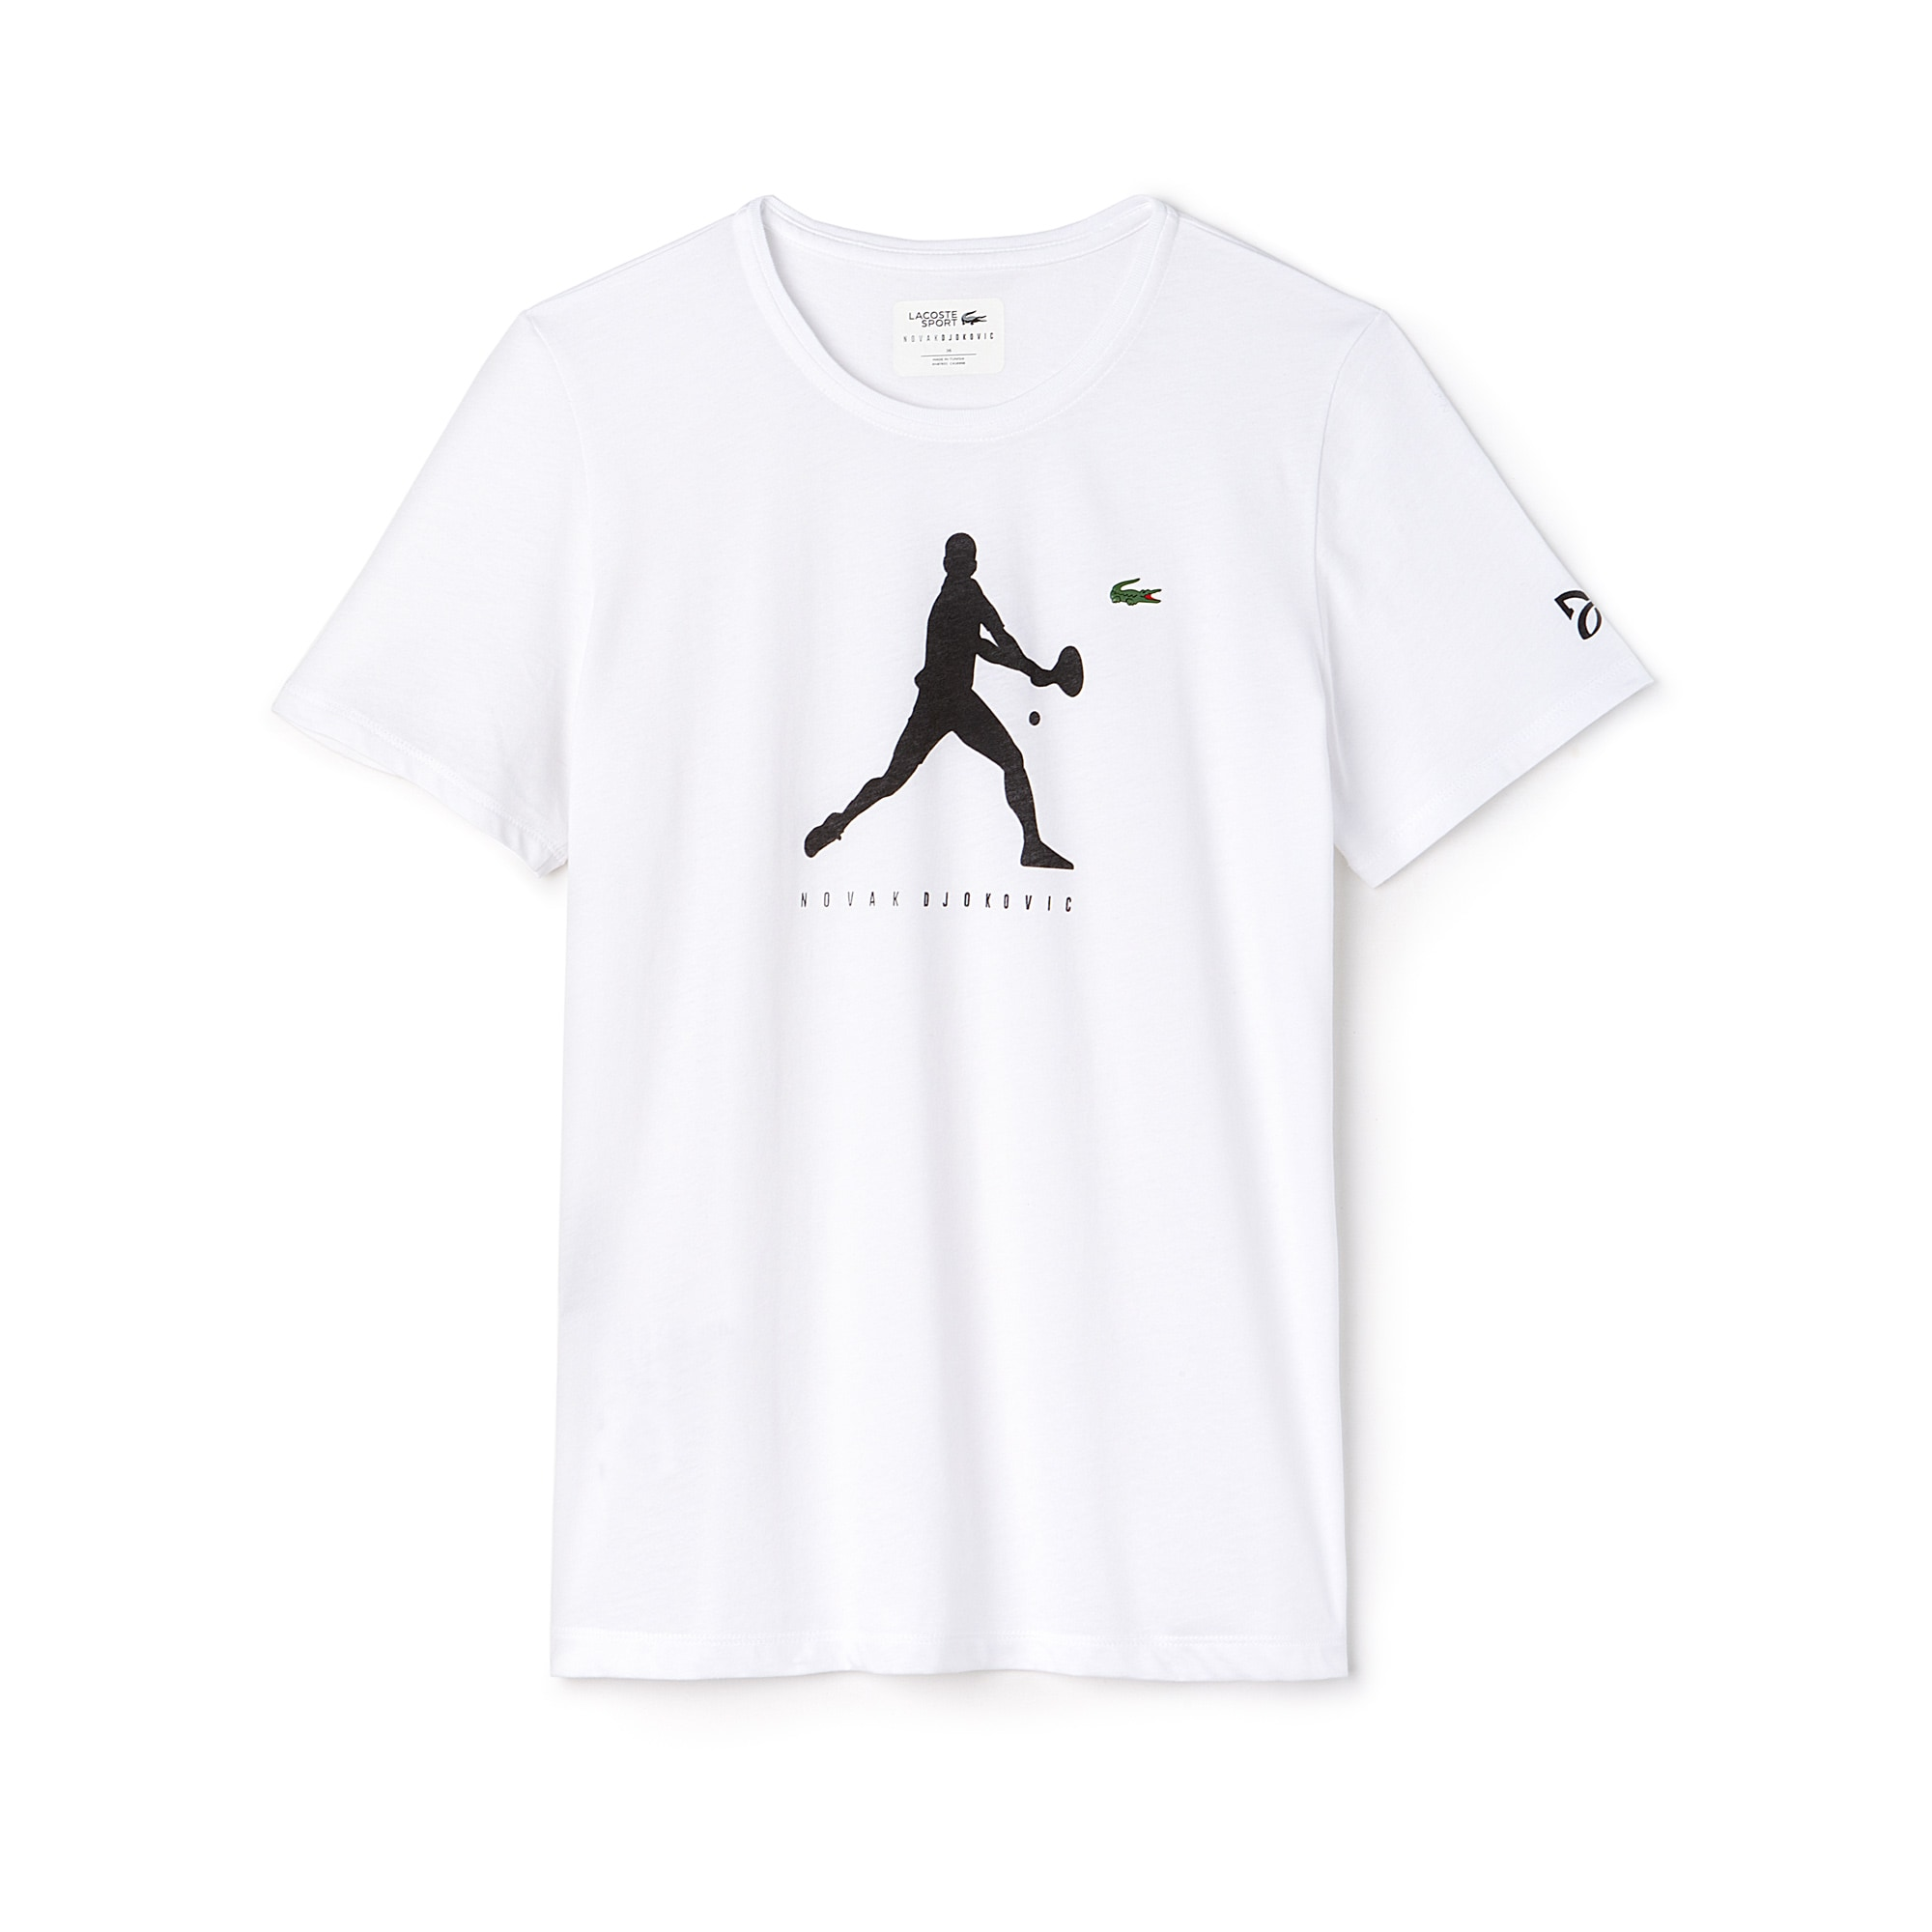 T-shirt col rond Lacoste SPORT COLLECTION NOVAK DJOKOVIC SUPPORT WITH STYLE en jersey uni avec imprimé